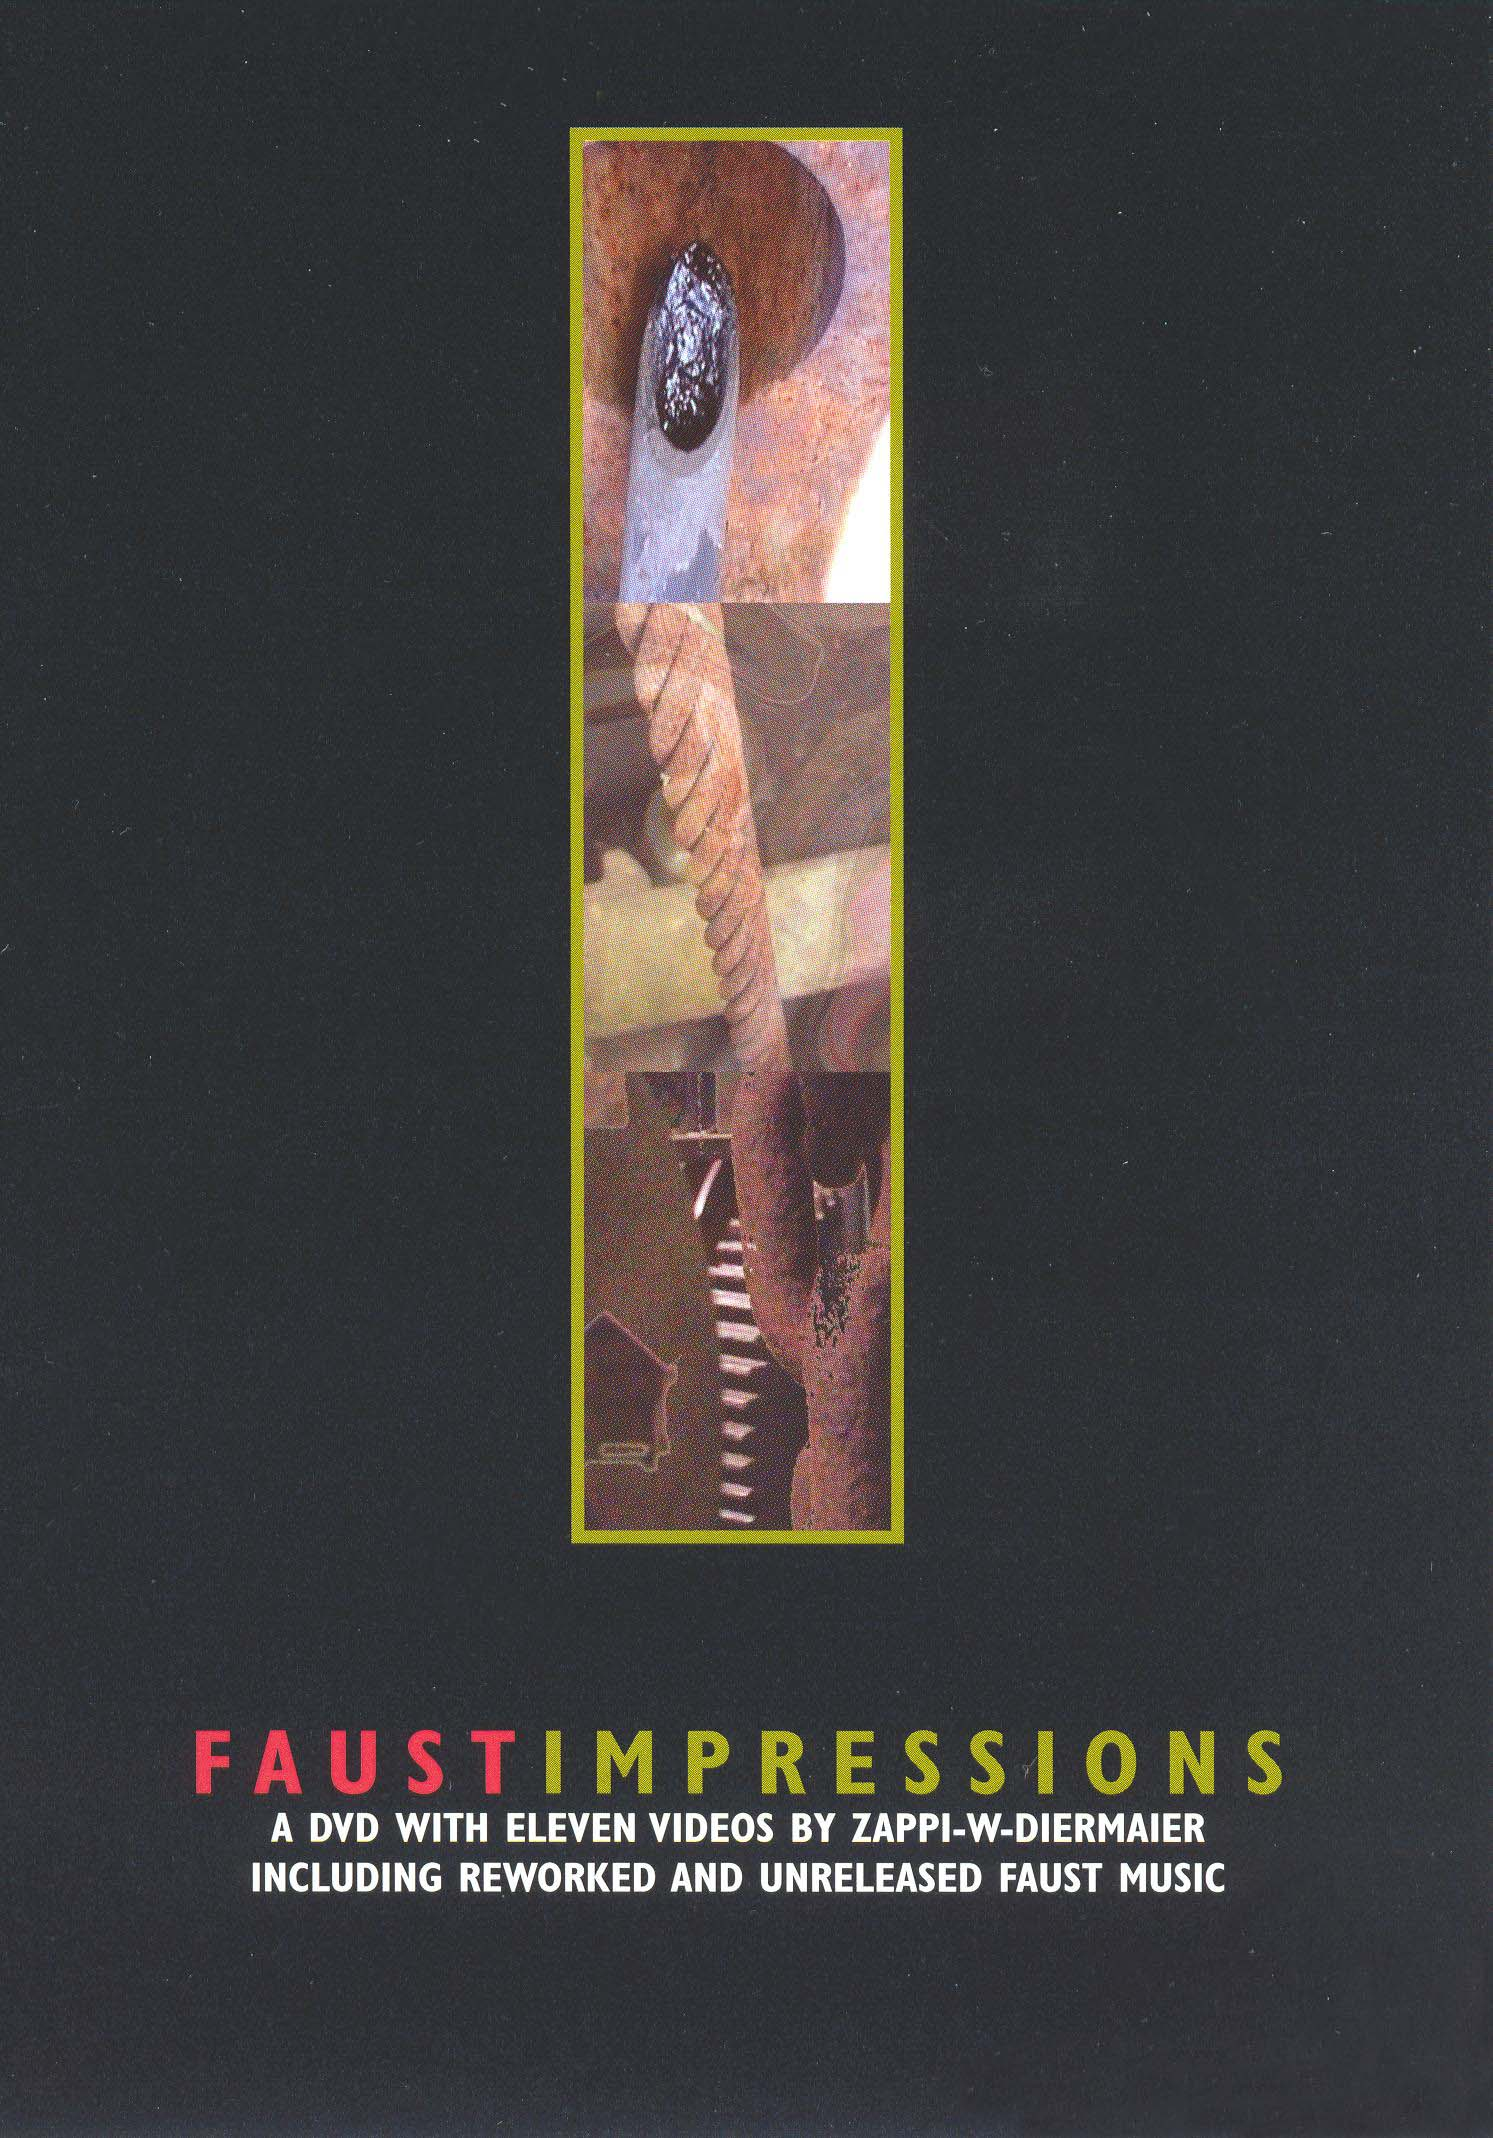 Faust: Impressions